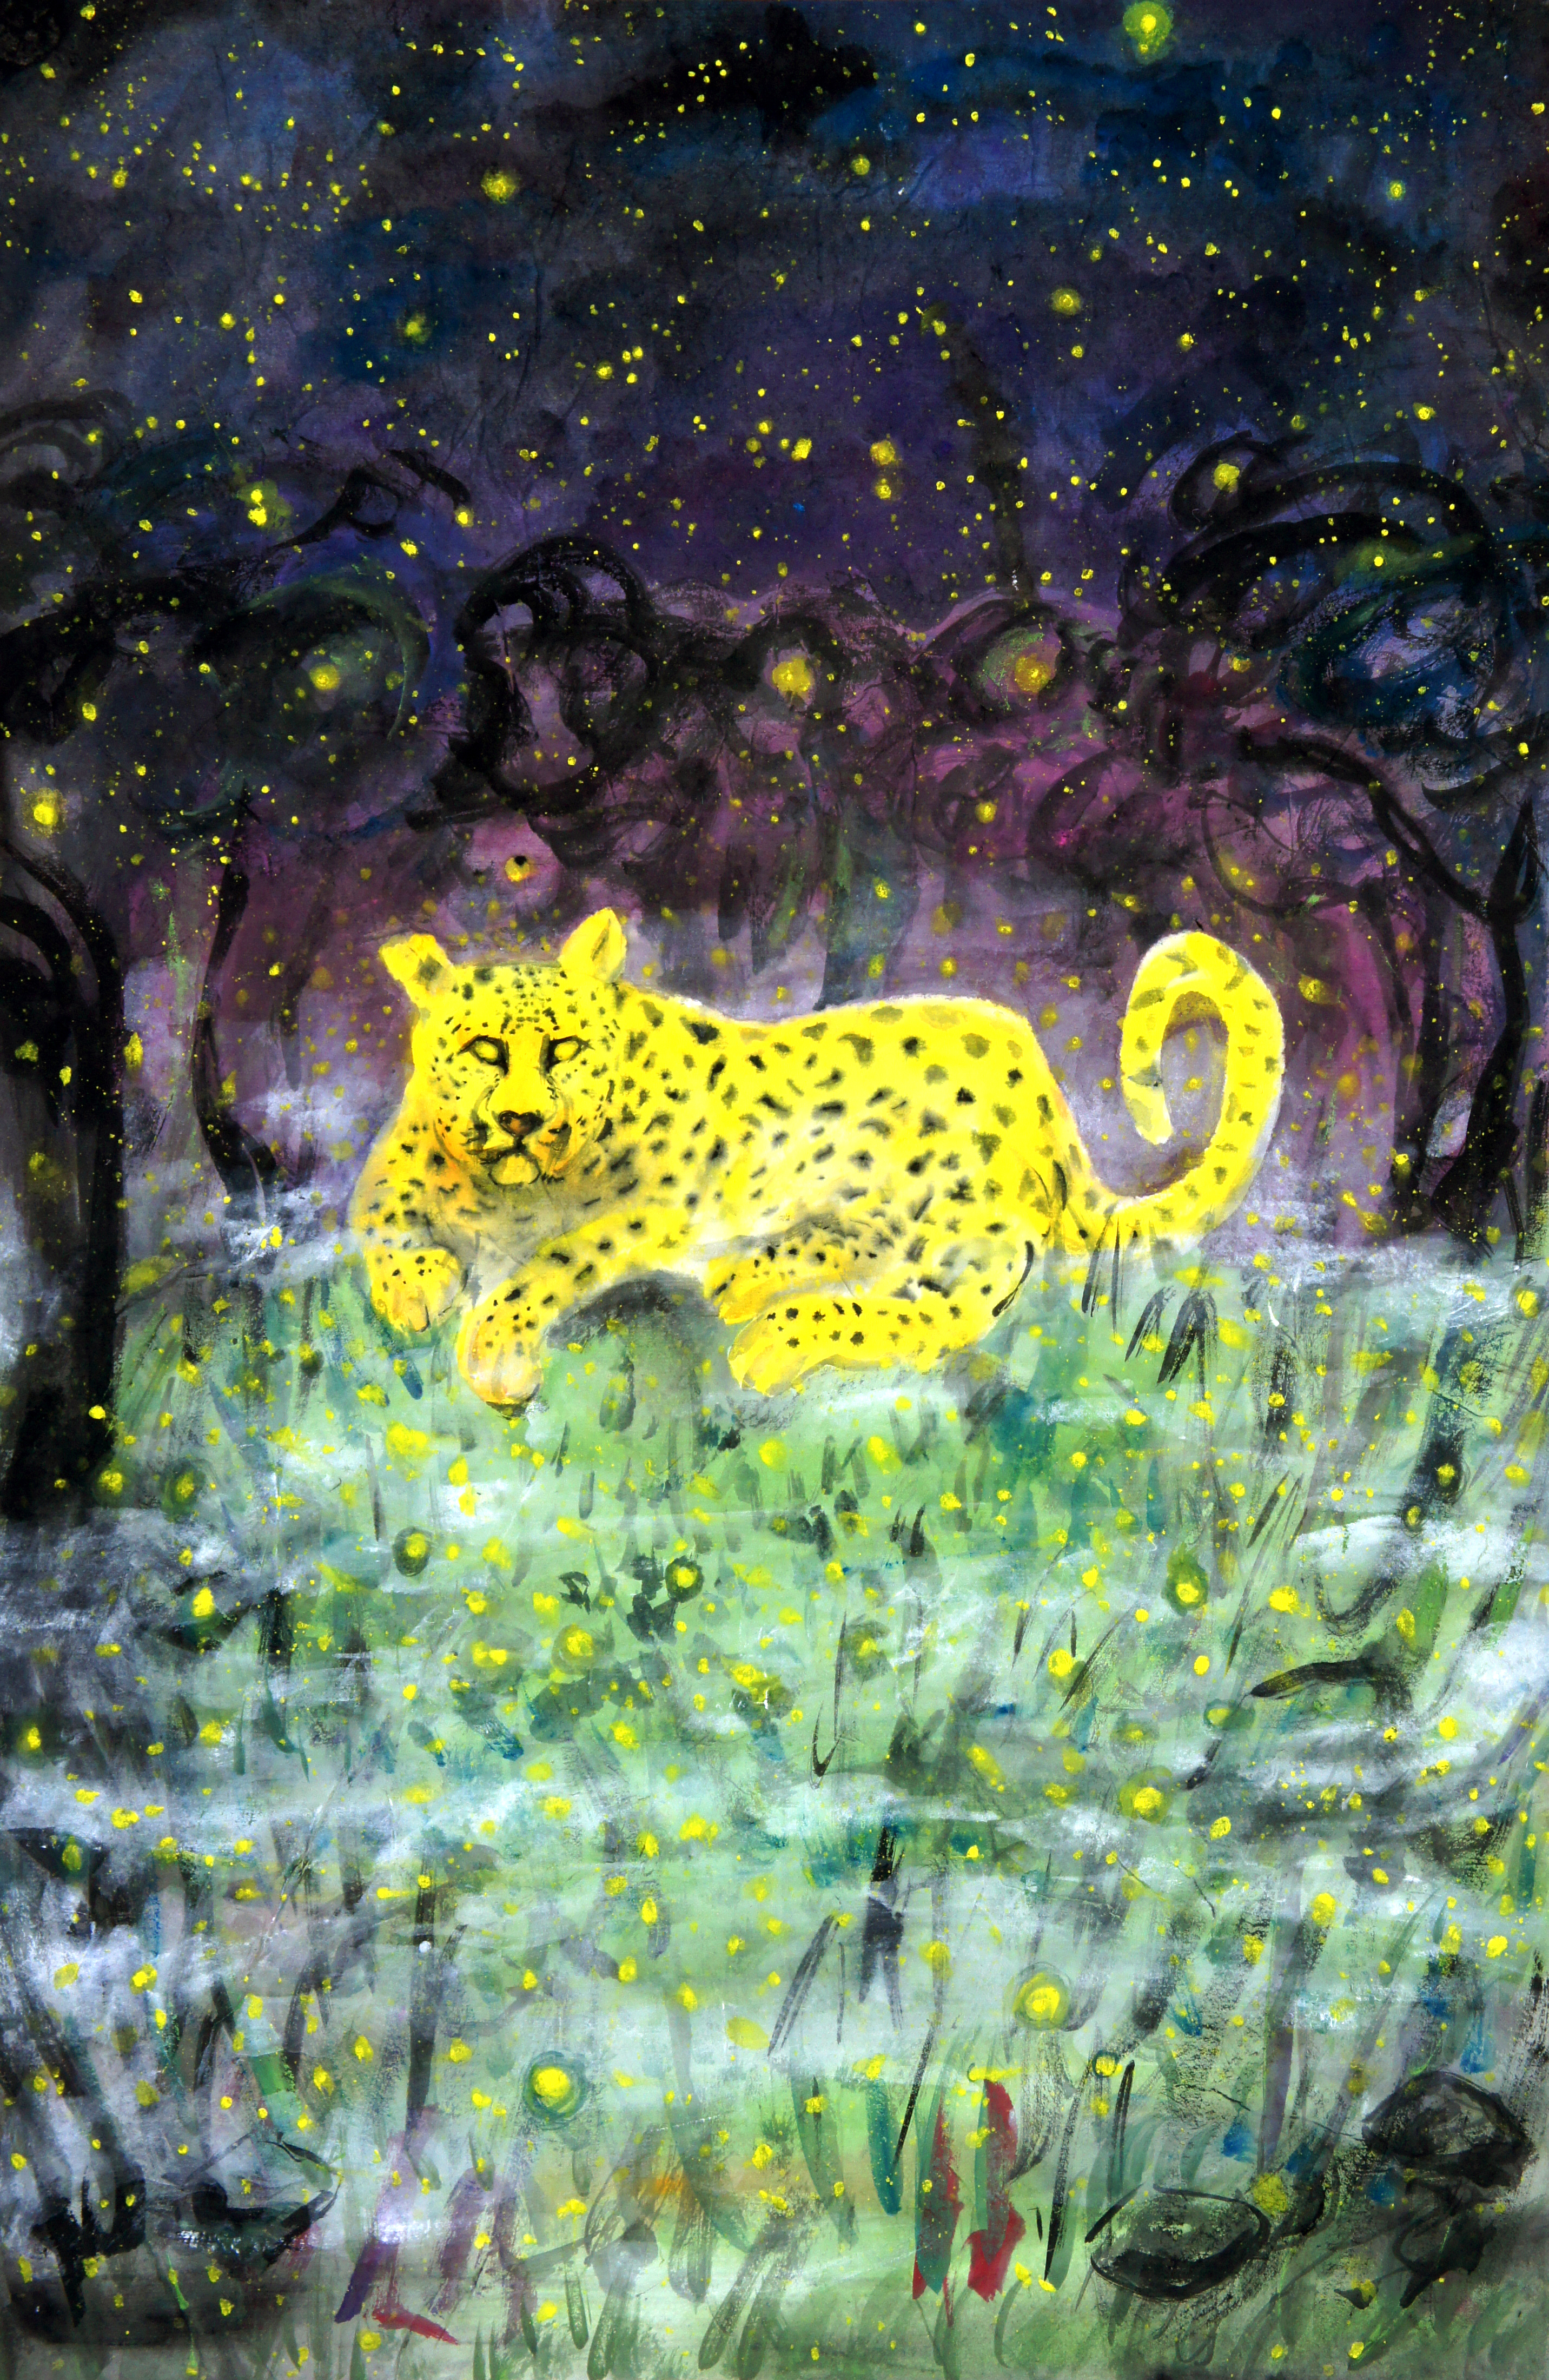 The Stars Are Out and There's a Leopard Between the Fireflies and Mist